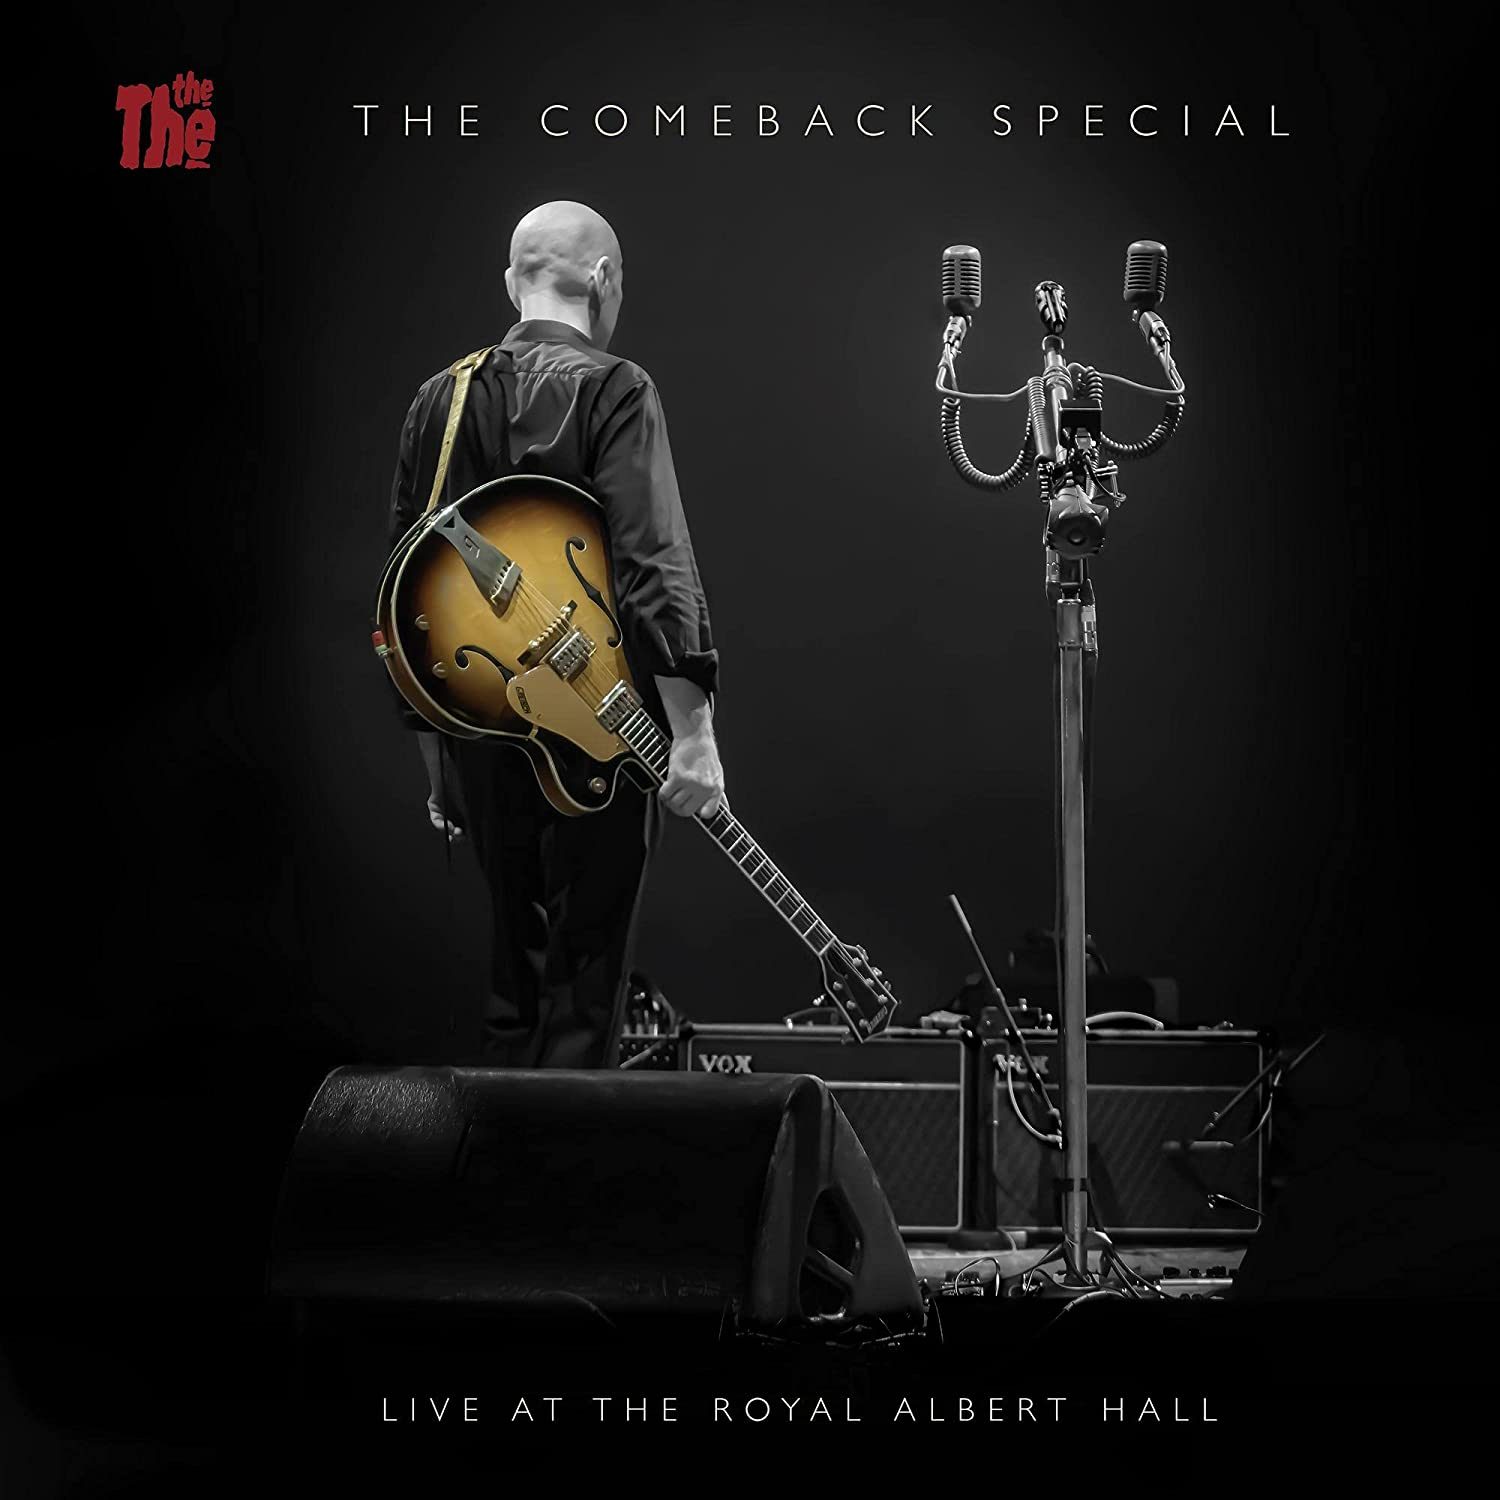 The Comeback Special - The The - Musik -  - 4029759164760 - 1. oktober 2021